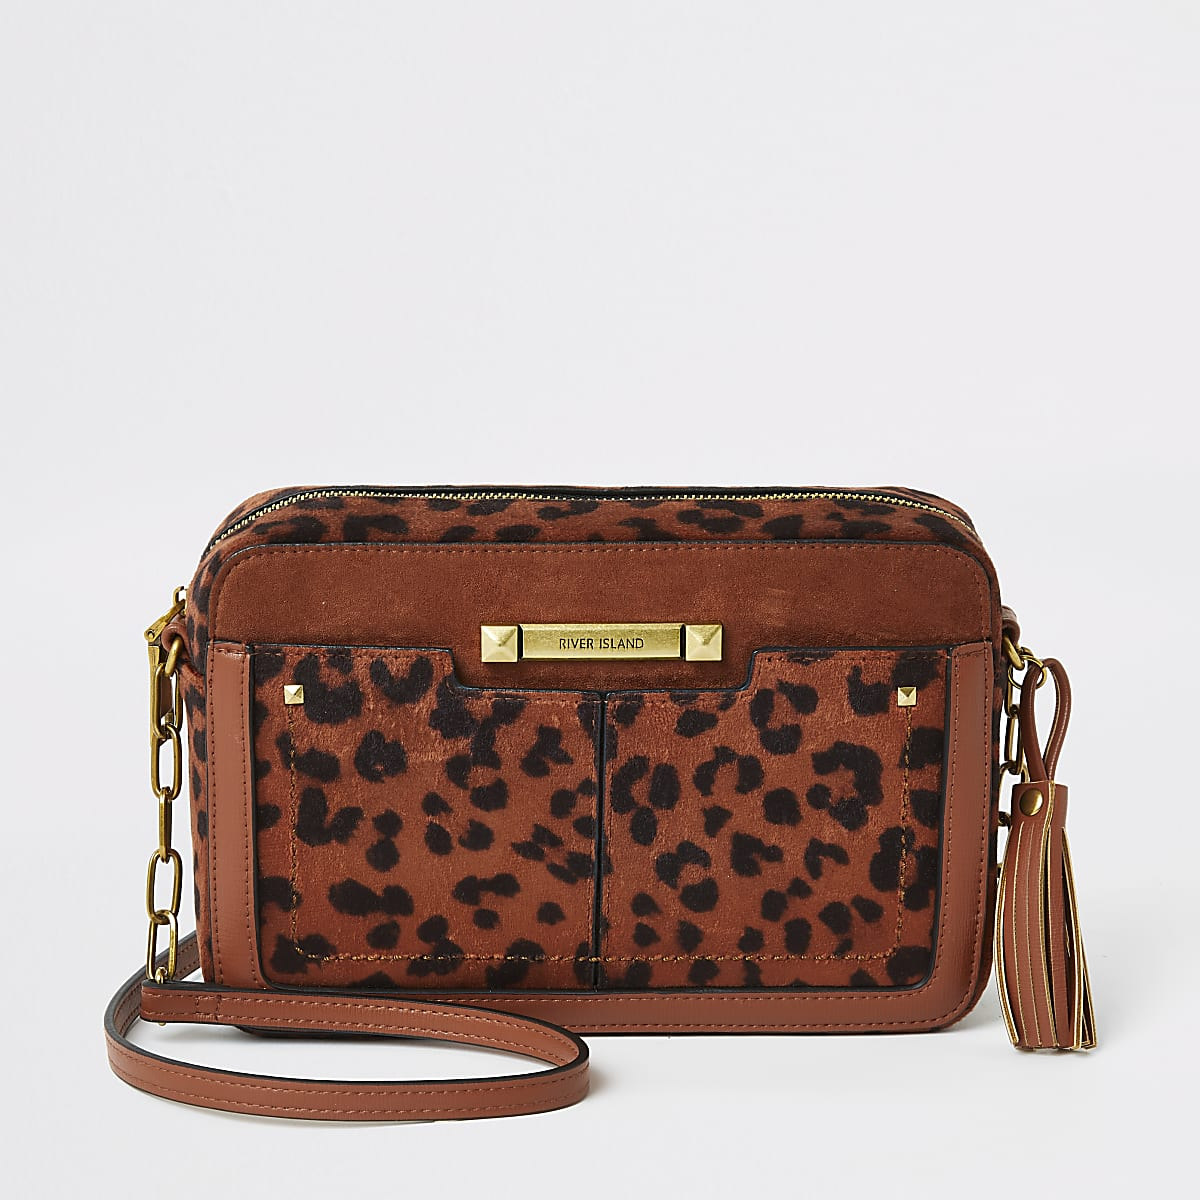 Rust velvet leopard printed cross body bag